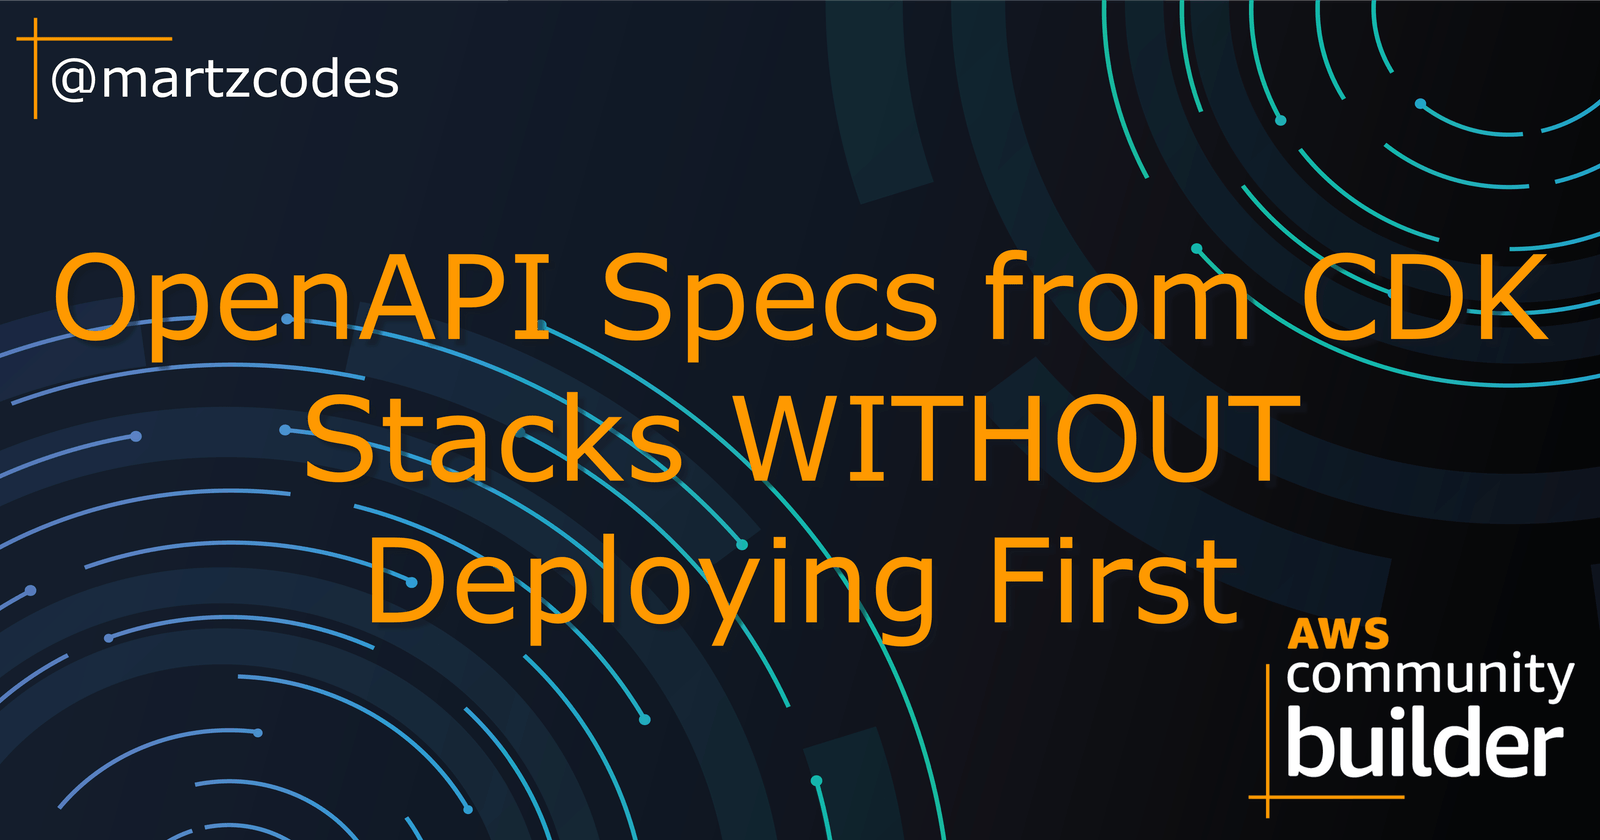 OpenAPI Specs from CDK Stack WITHOUT Deploying First